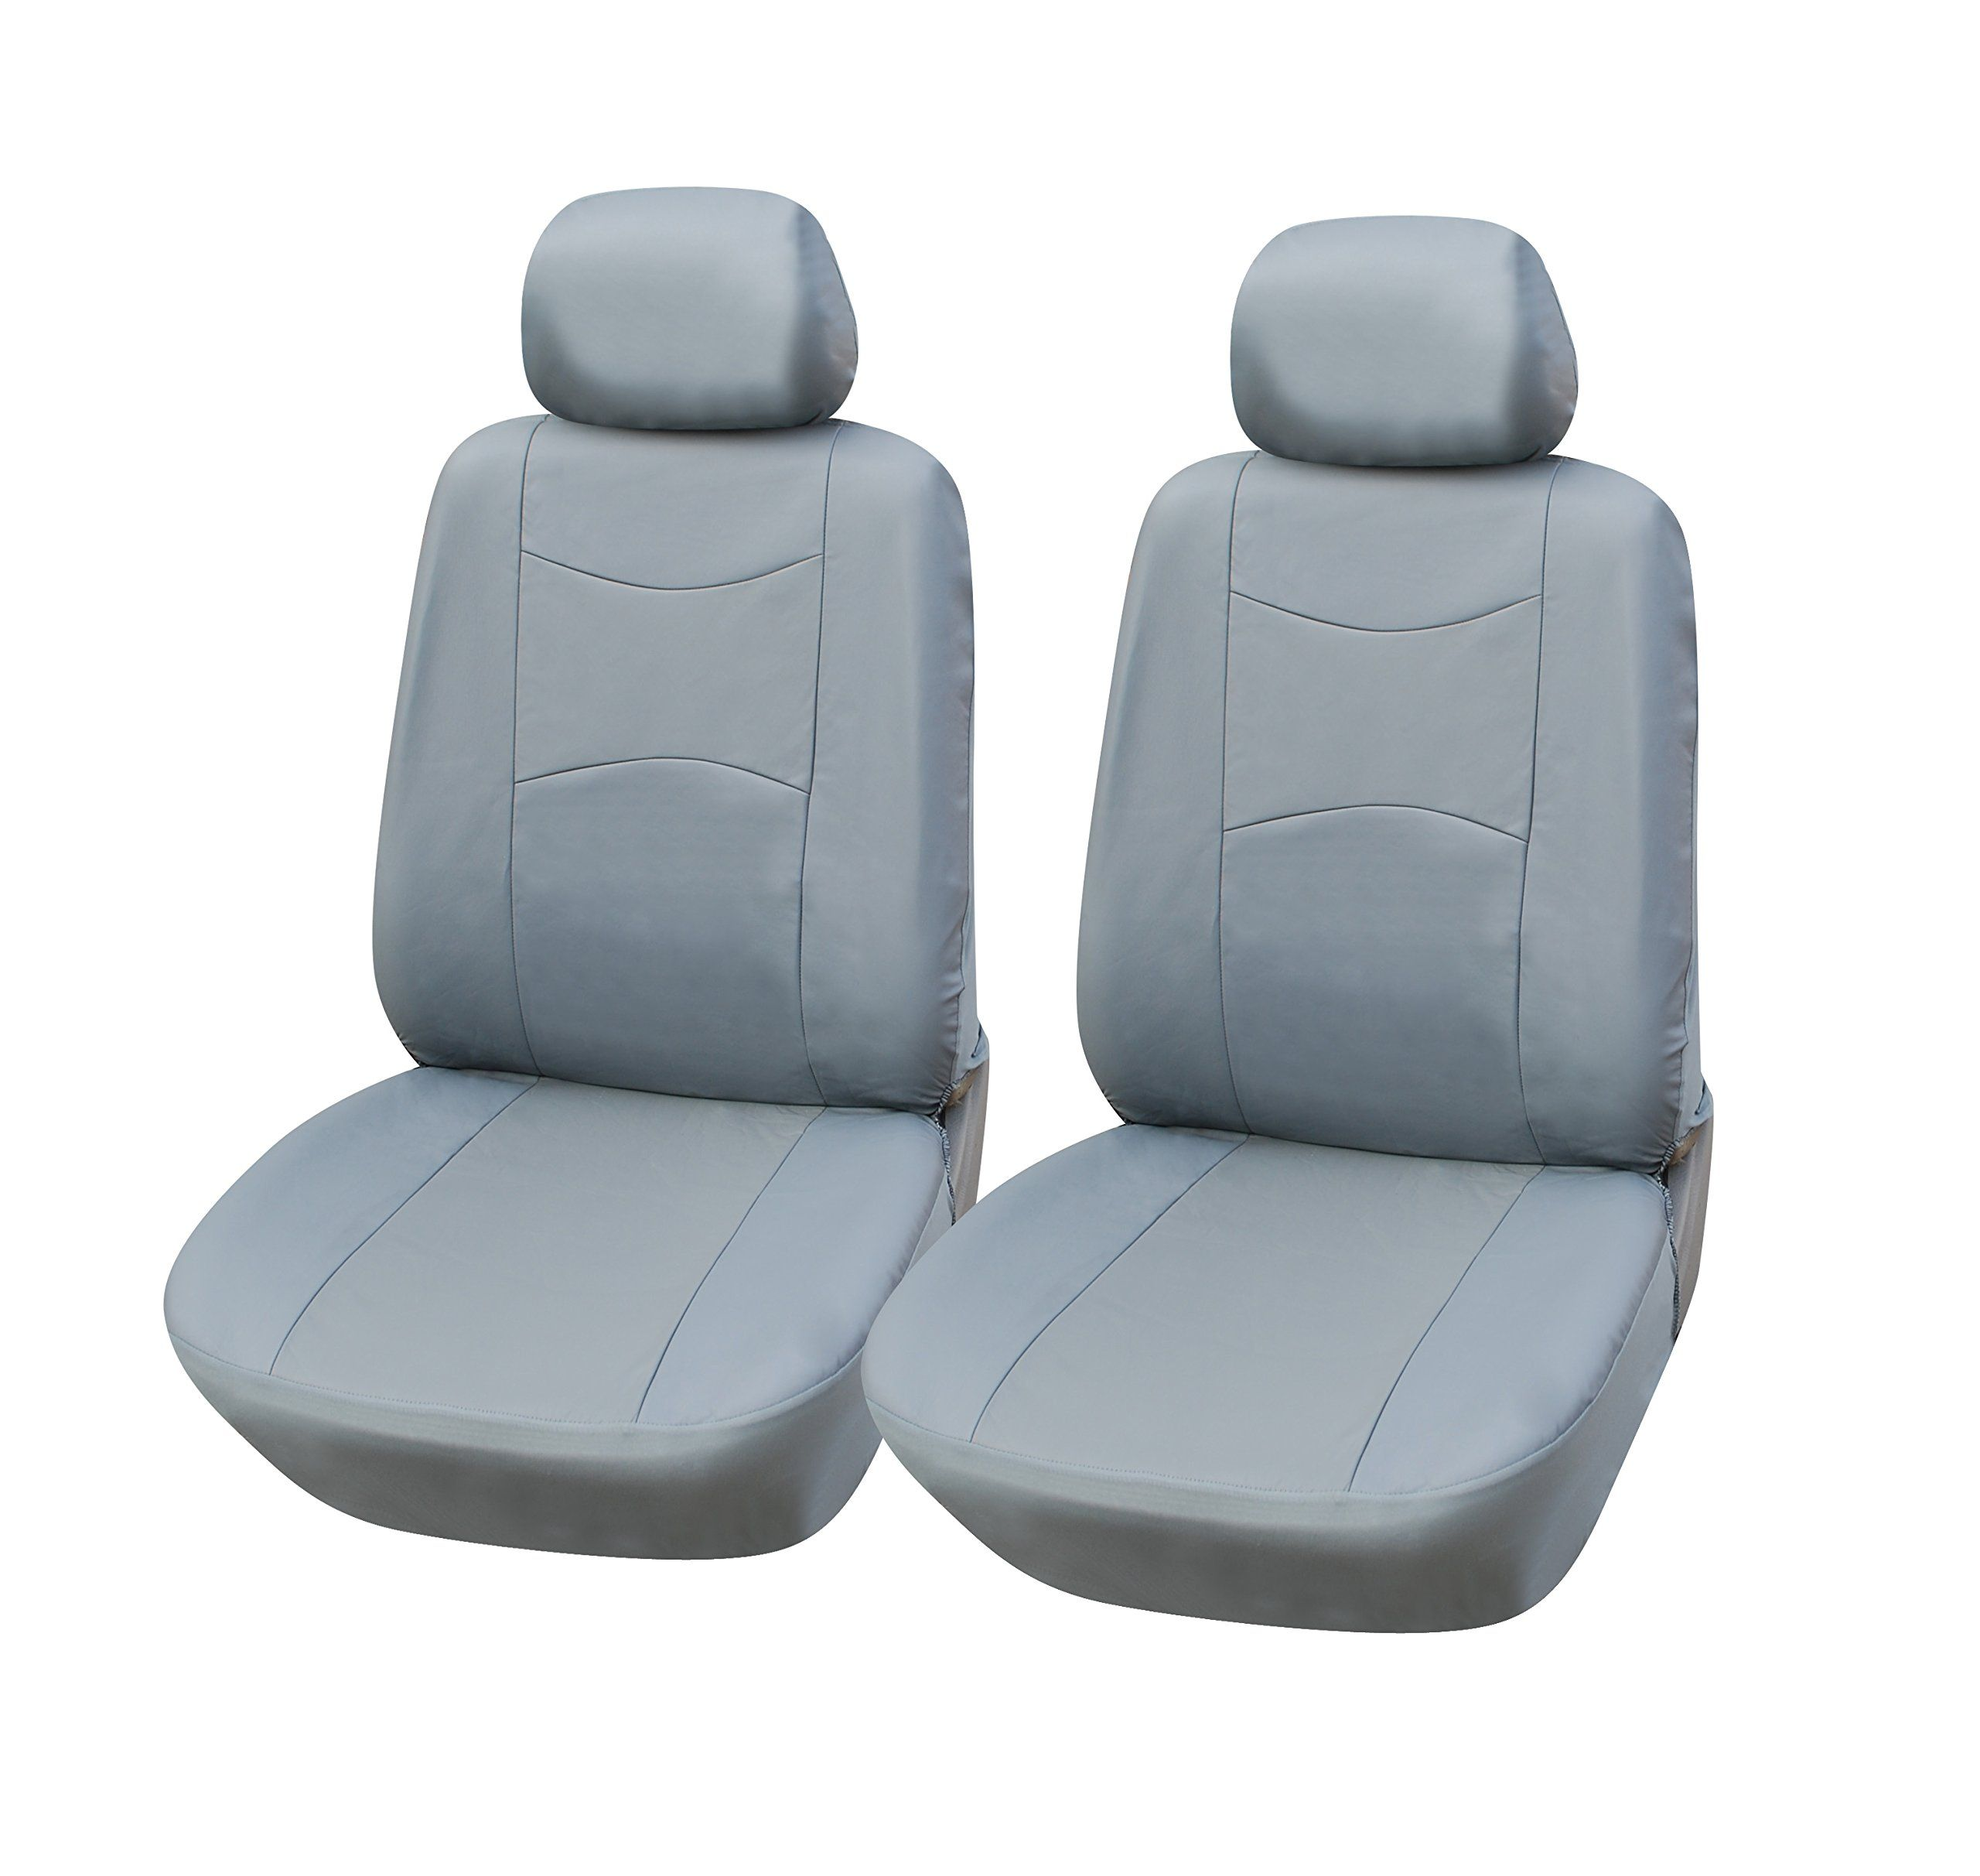 115902 Grey Leather Like 2 Front Car Seat Covers Compatible To Mercedes Benz GLE